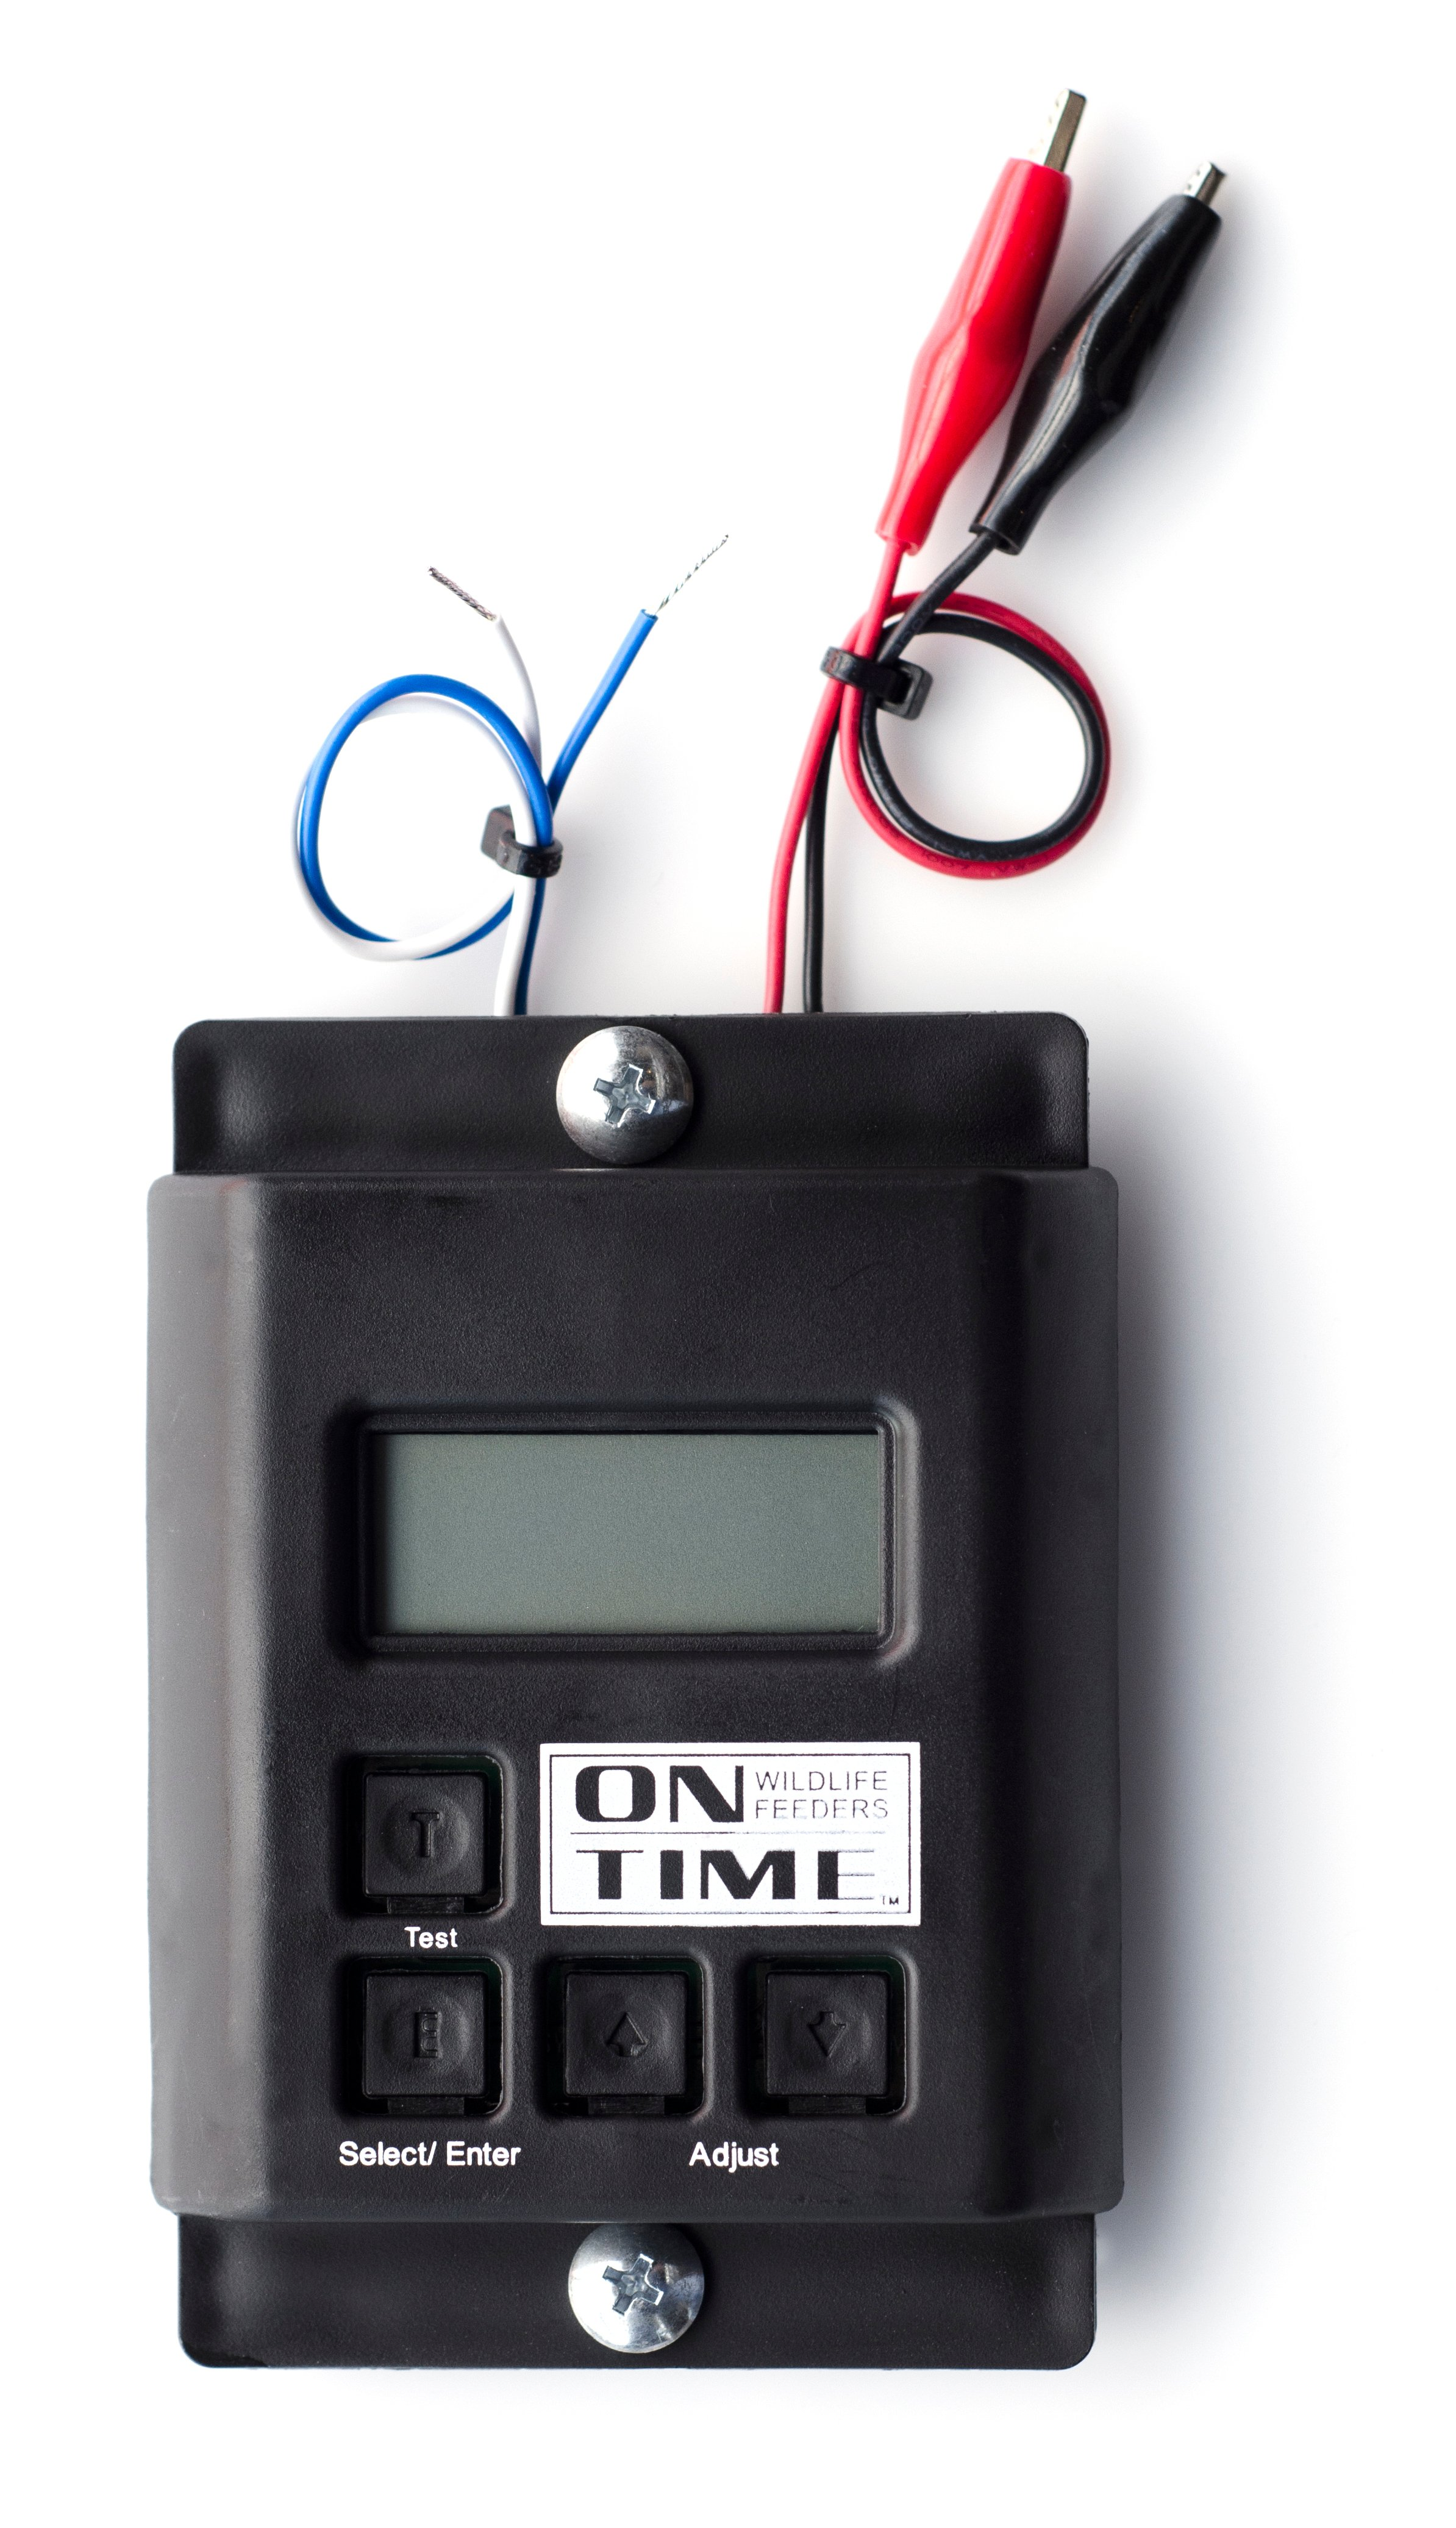 On Time Wildlife Feeders 503 Digital Replacement Timer